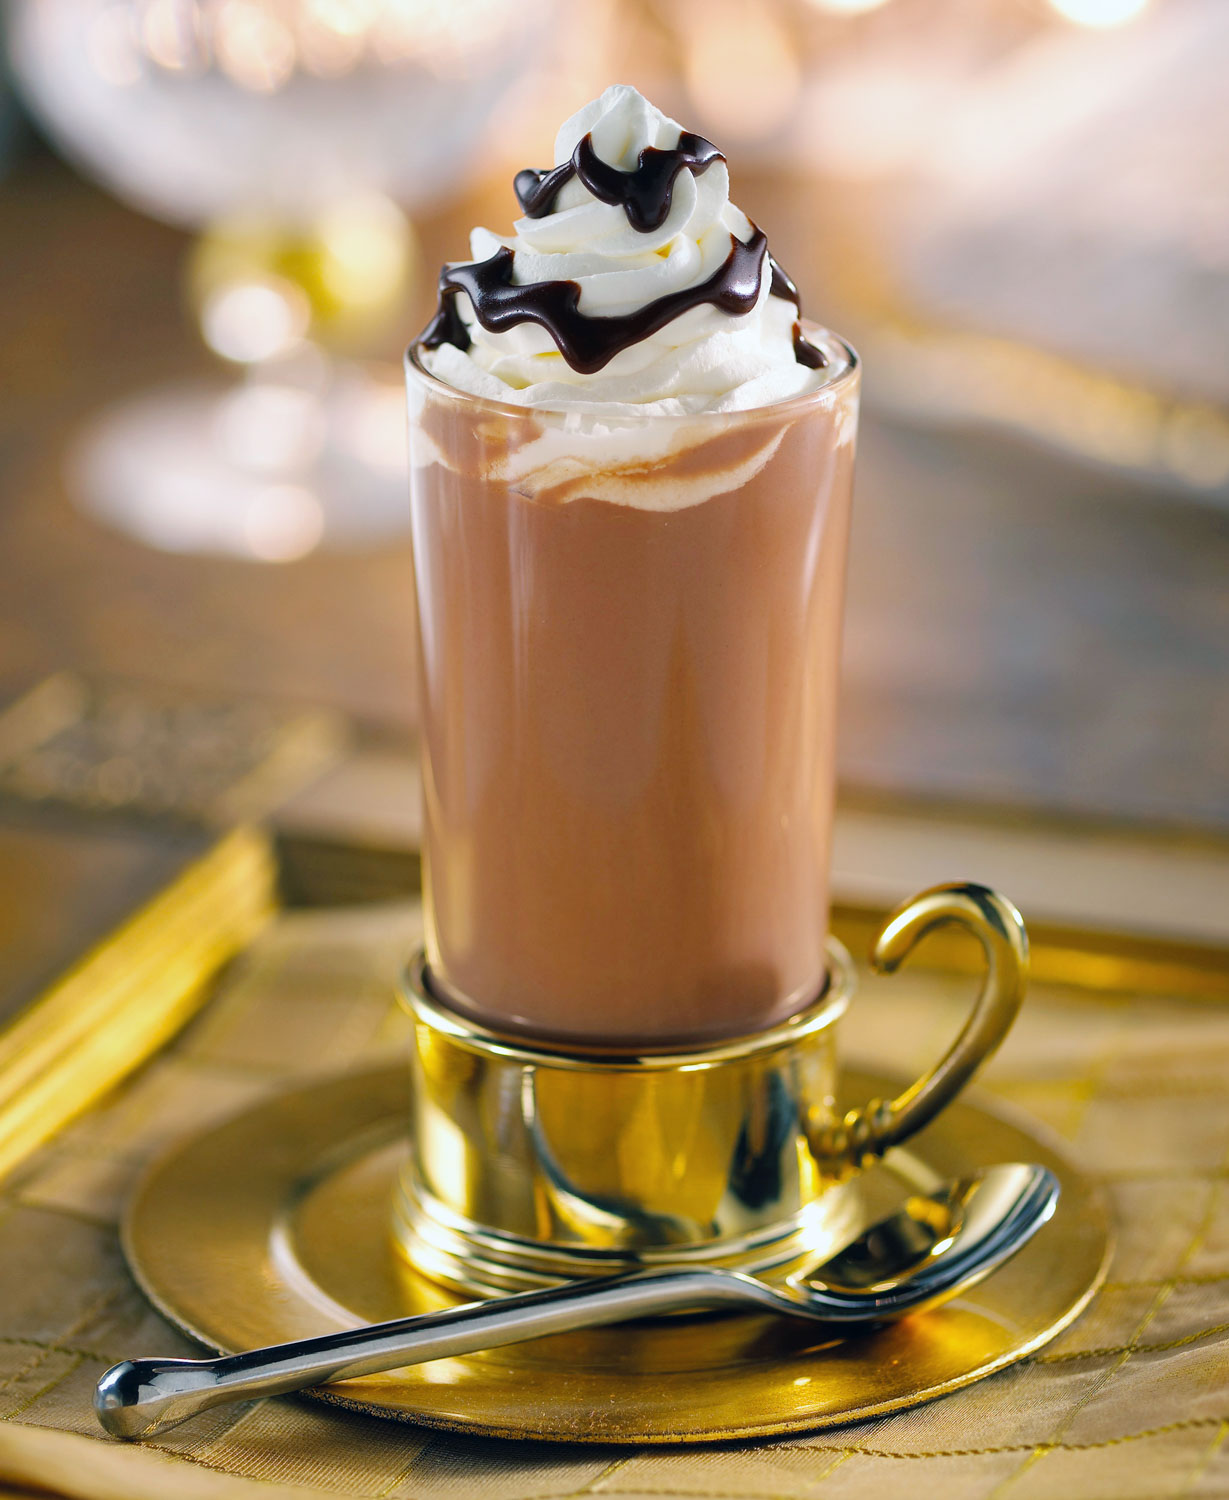 chocolate-hot-drink-whipped-cream-1_webupdate